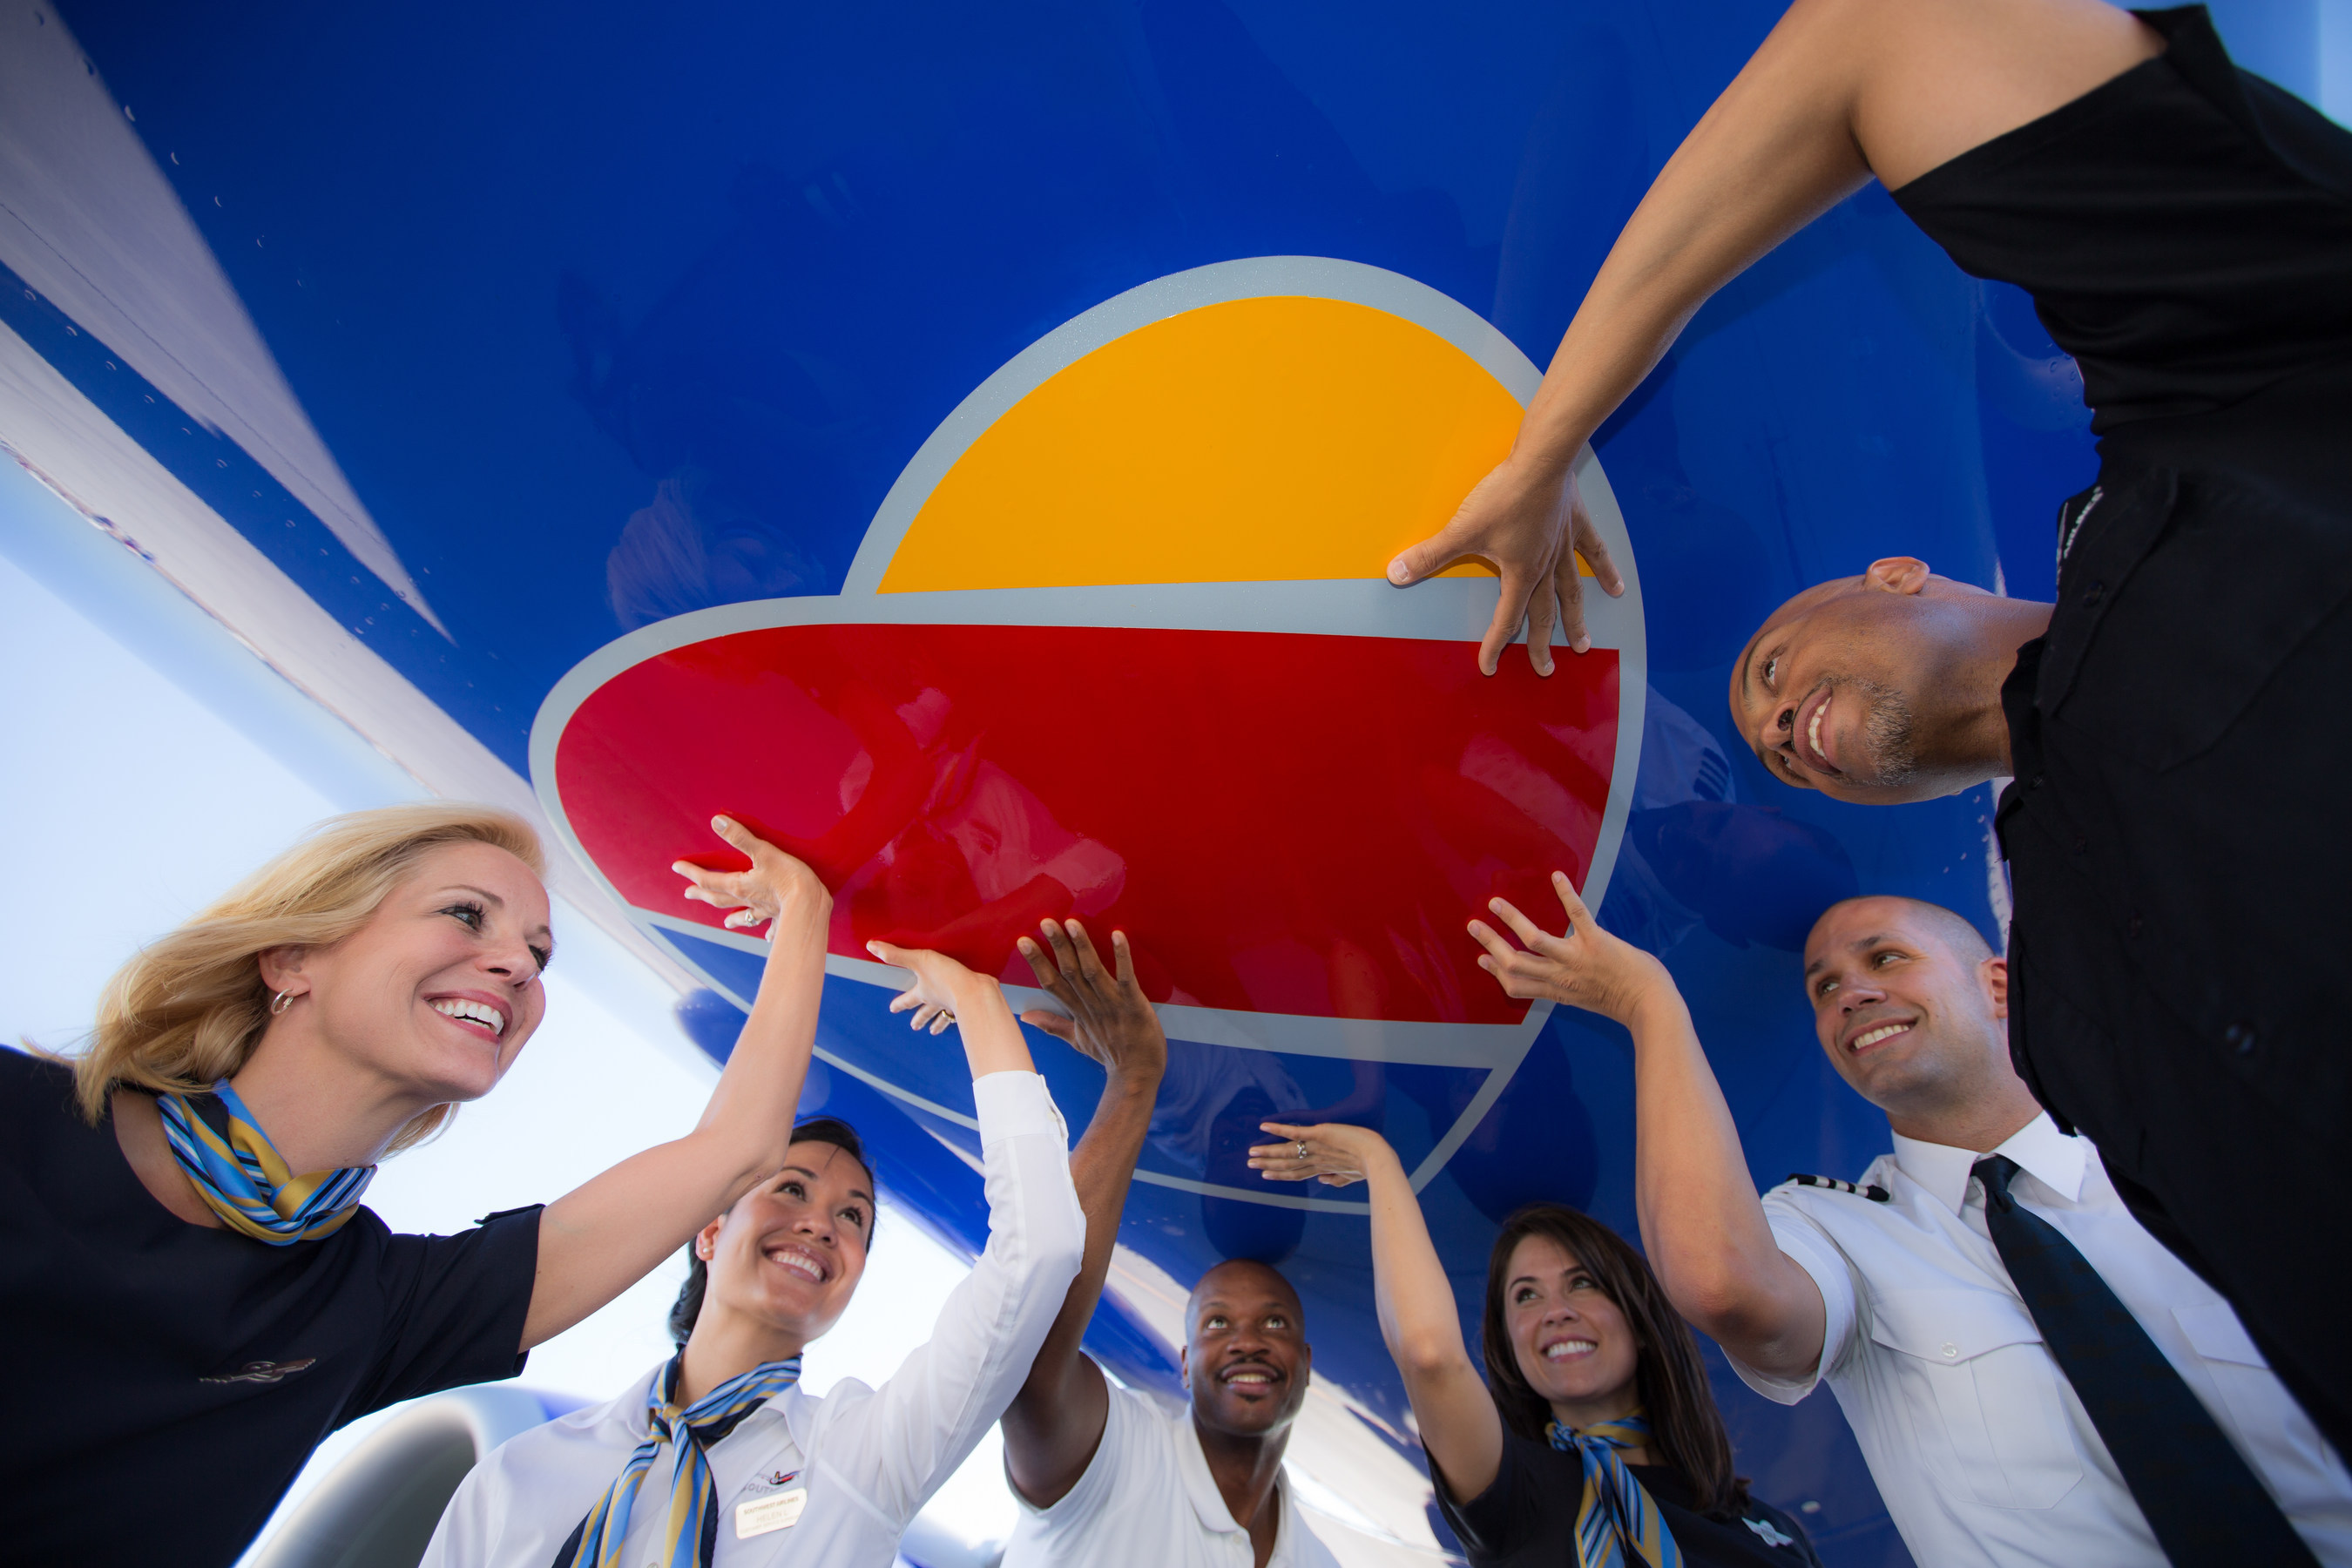 Southwest Airlines' Bold Look; Same #SouthwestHeart